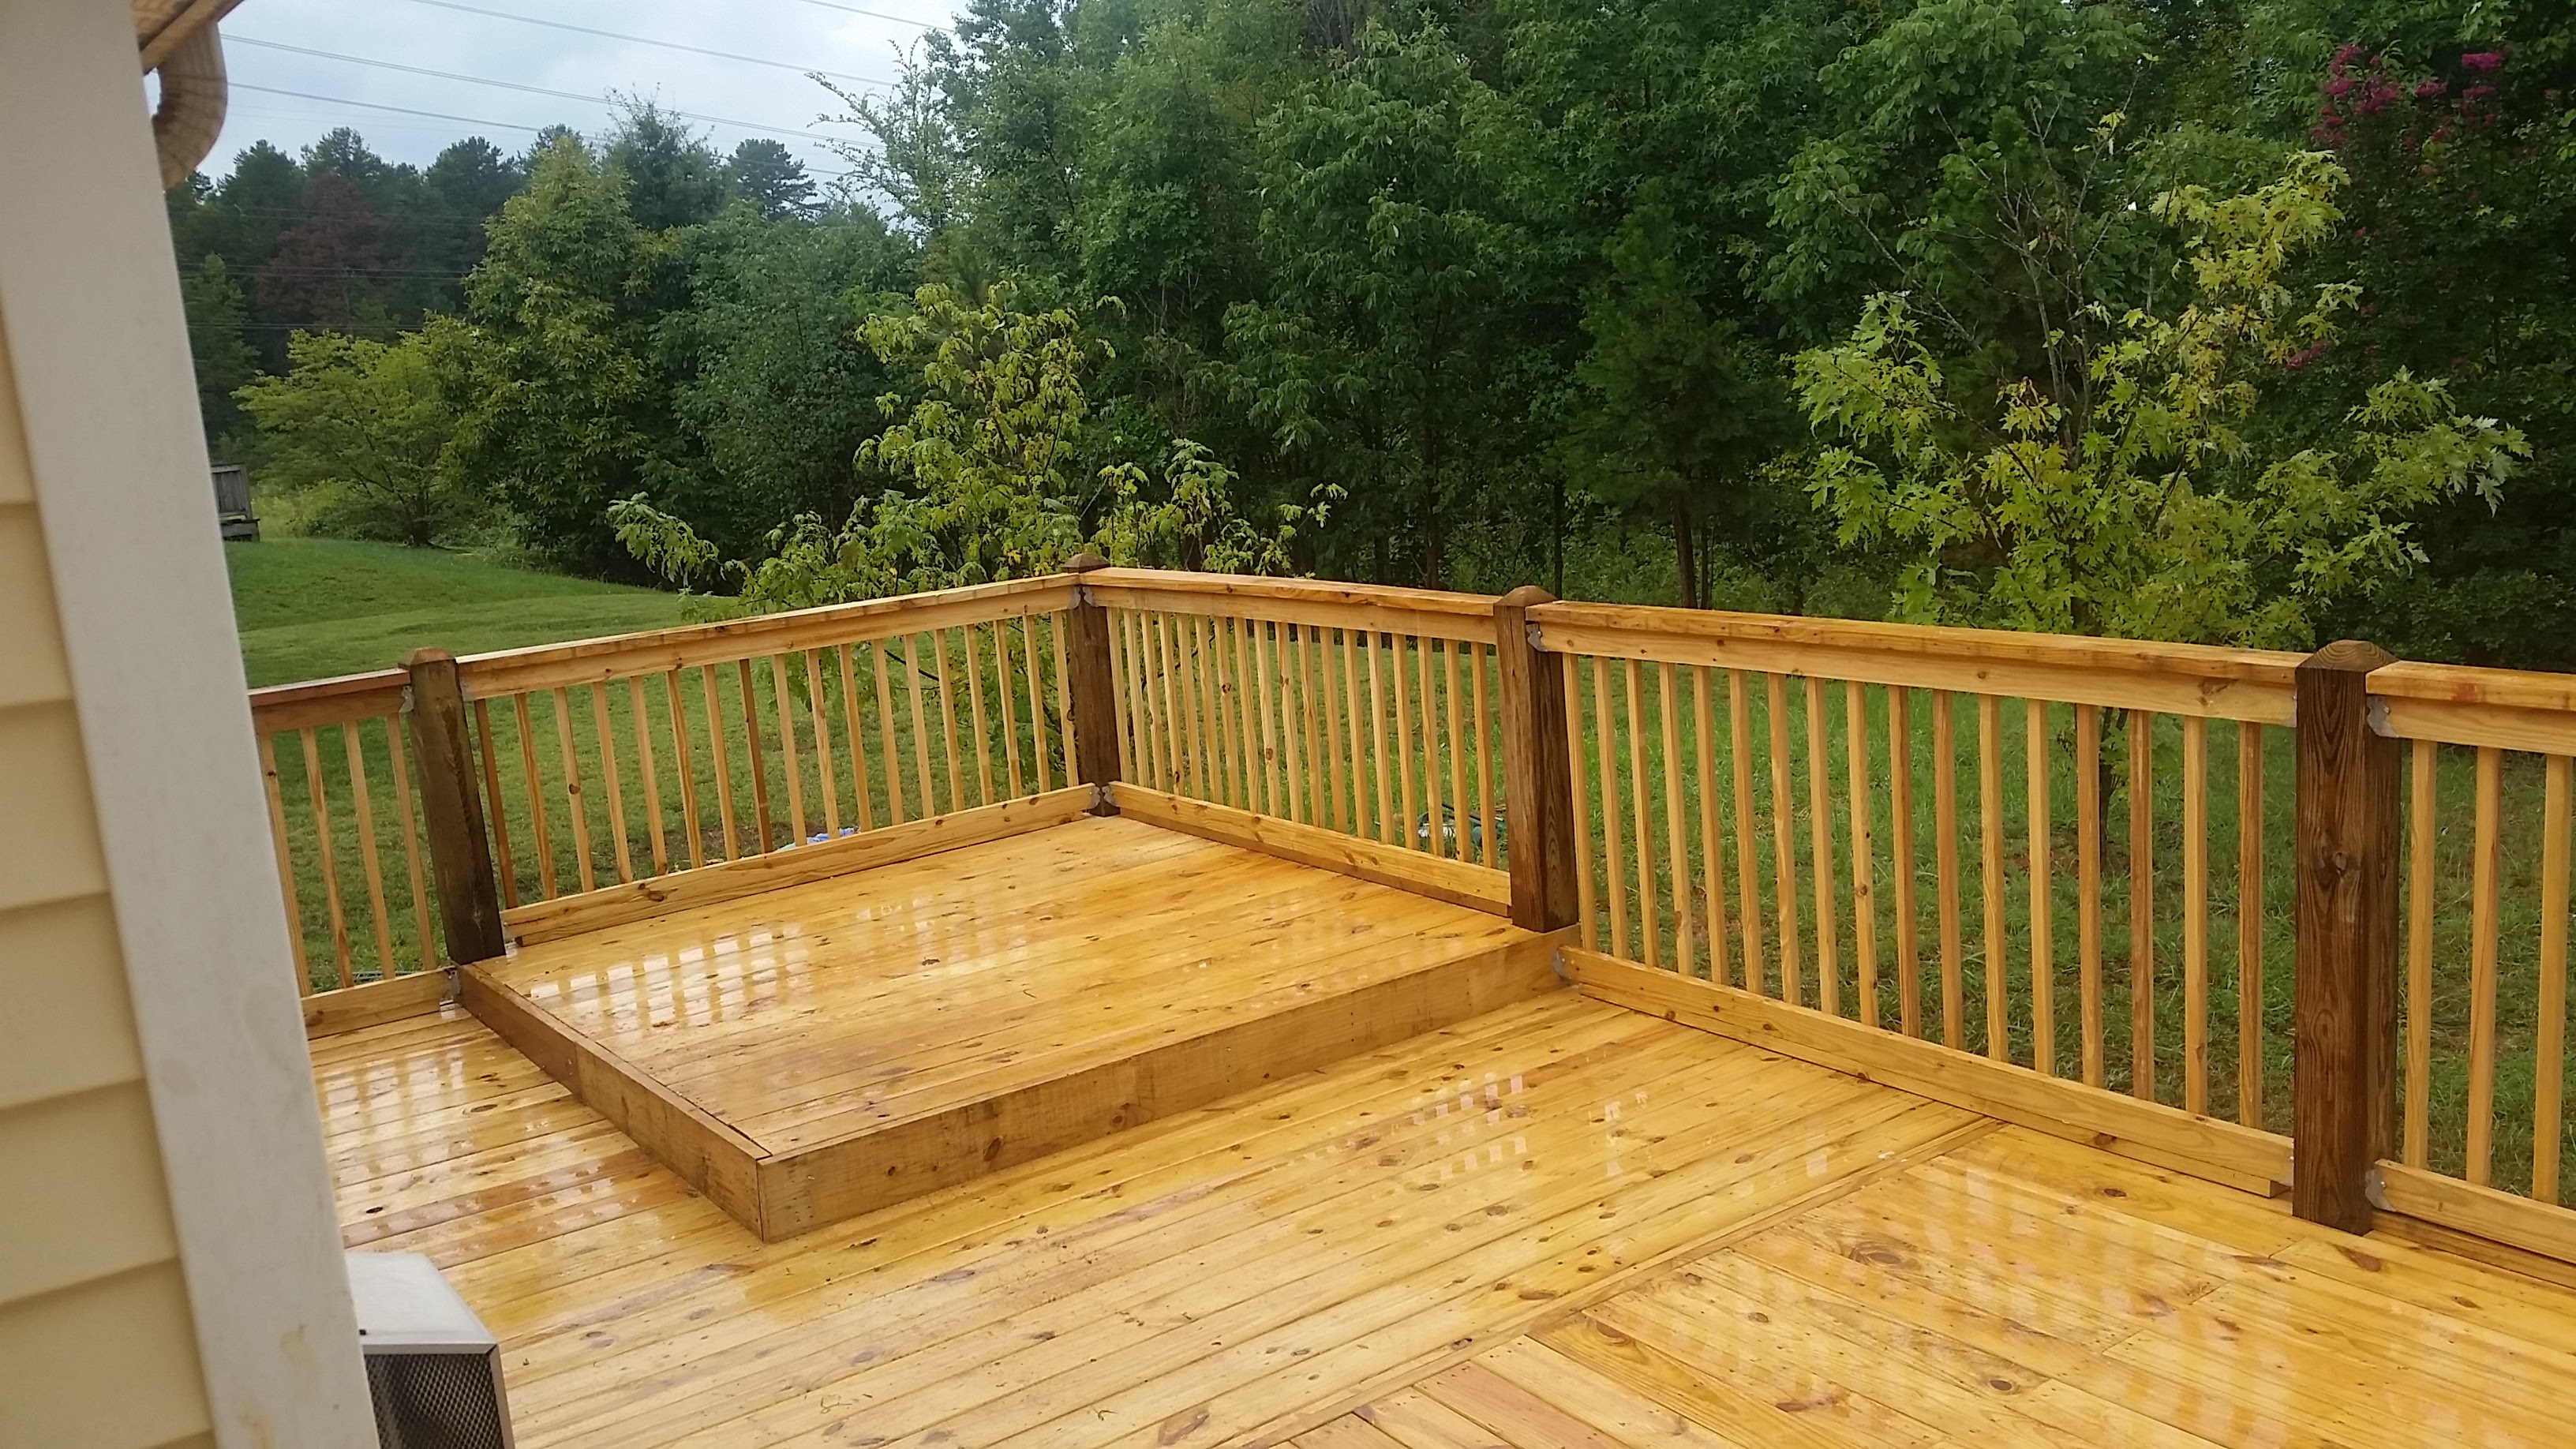 Deck with raised grilling area